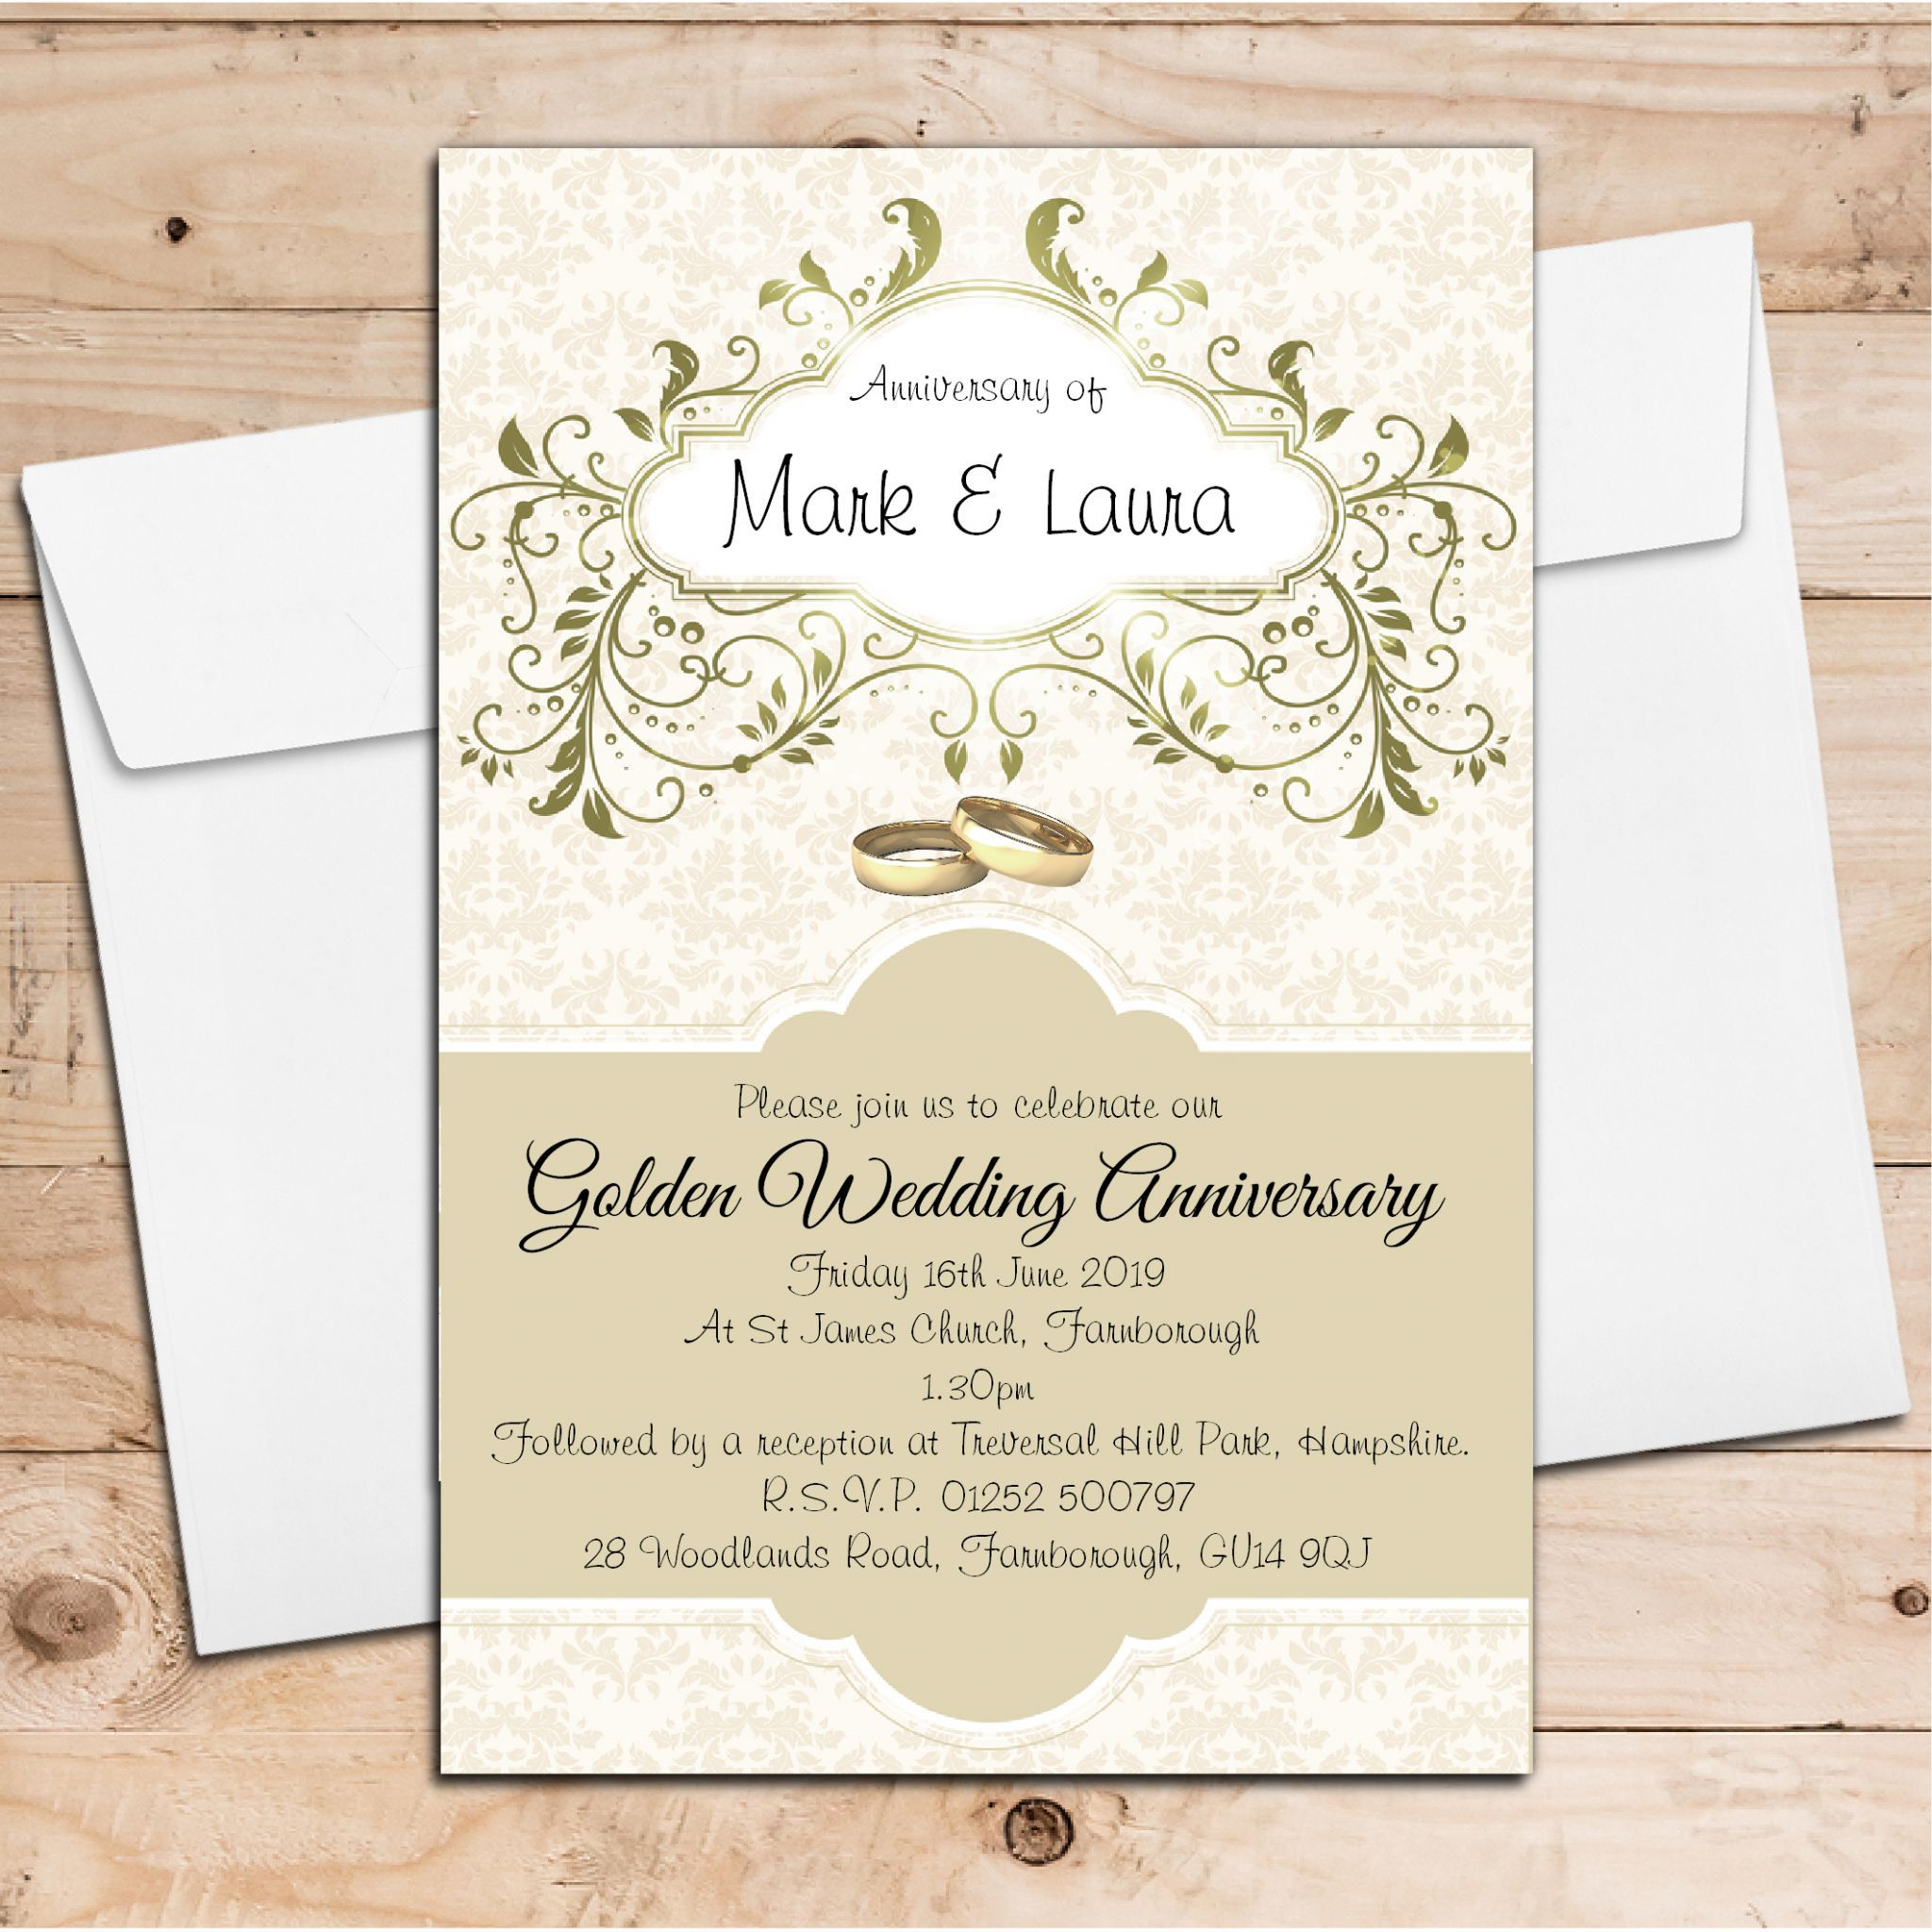 000 Incredible 50th Anniversary Invitation Design Highest Clarity  Designs Wedding Template Microsoft Word Surprise Party Wording Card IdeaFull